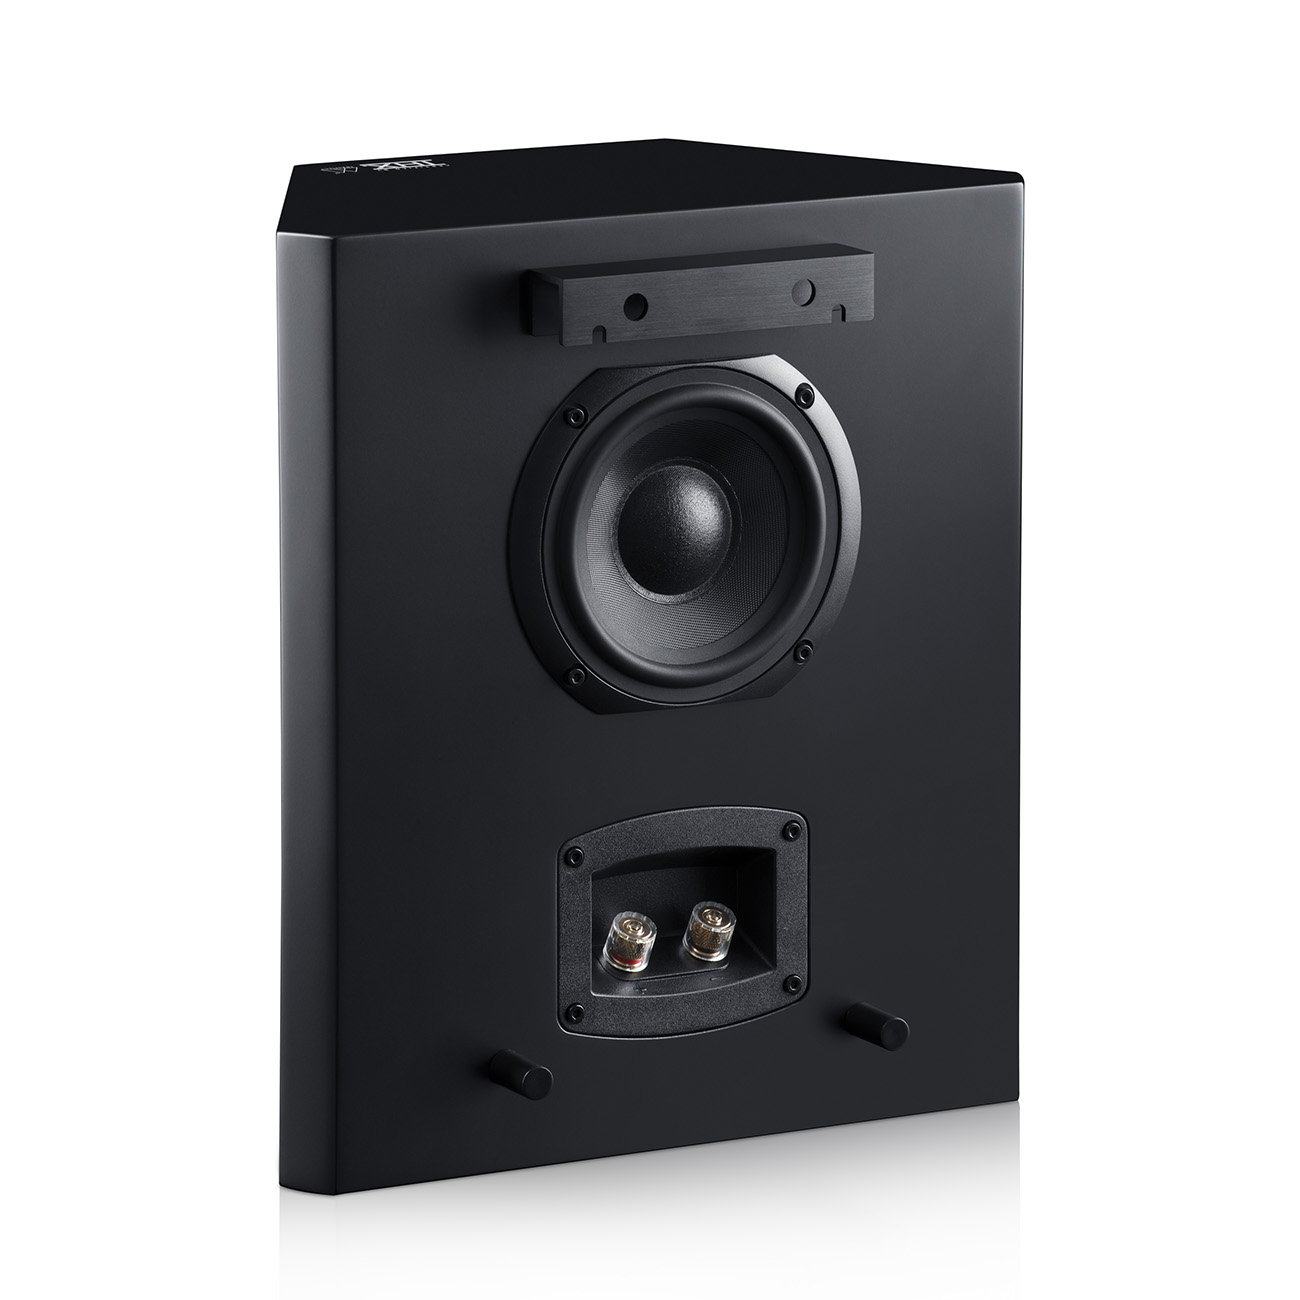 system-6-thx-select-dipol-back-angled-black-1300x1300x72.jpg